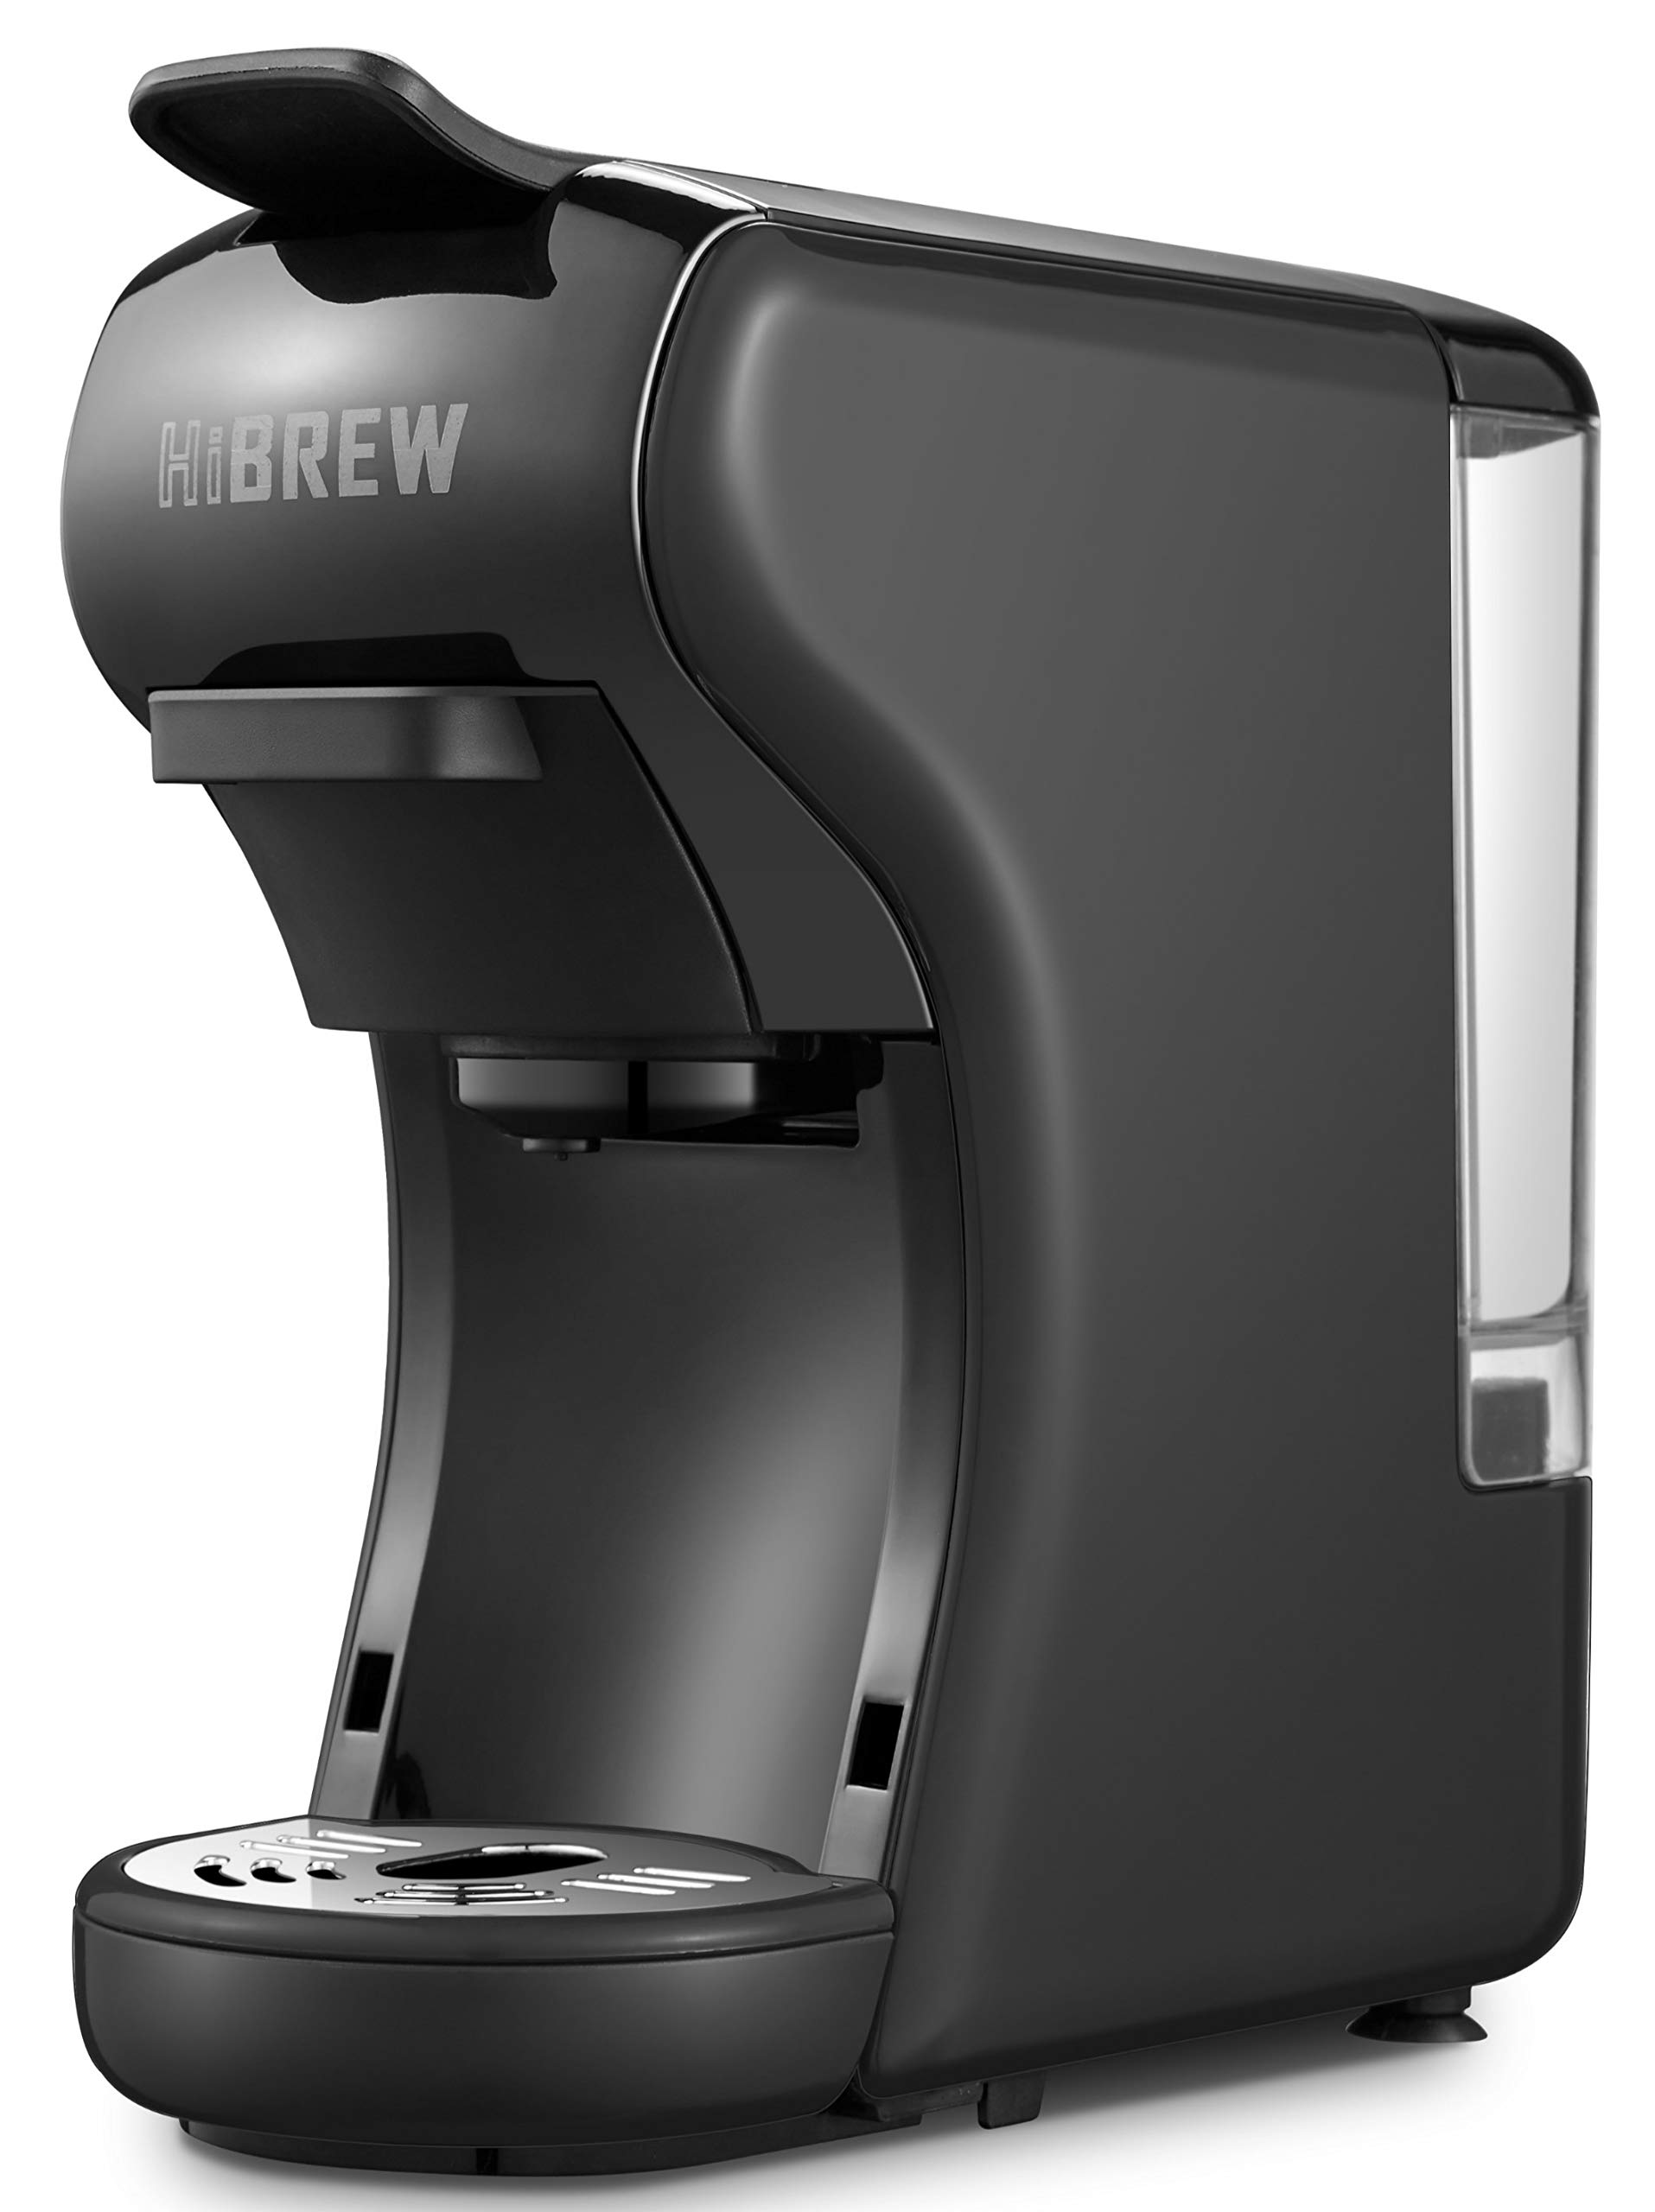 HiBREW 3-in-1 Multi-Function Espresso Coffee Maker Dolce Gusto Machine Compatible with Nespresso Capsule, Dolce Gusto Capsule and Ground Coffee, Italian 19 Bar High Pressure Pump, Buttons for Espresso and Lungo, 1450W (Black) by HIBREW